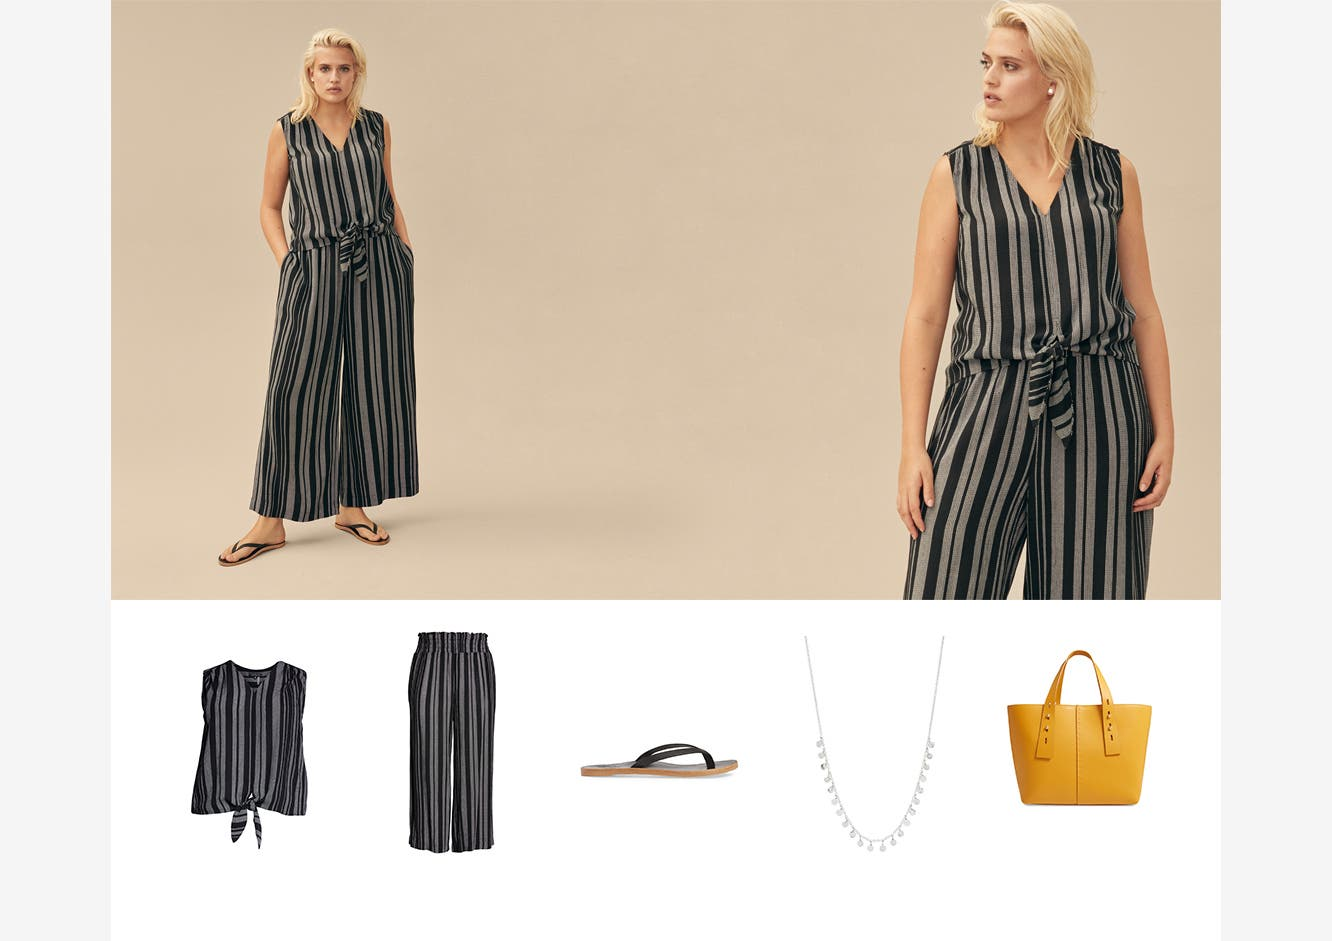 4802516cc5282 Women's Clothing, Shoes, & Accessories | Nordstrom